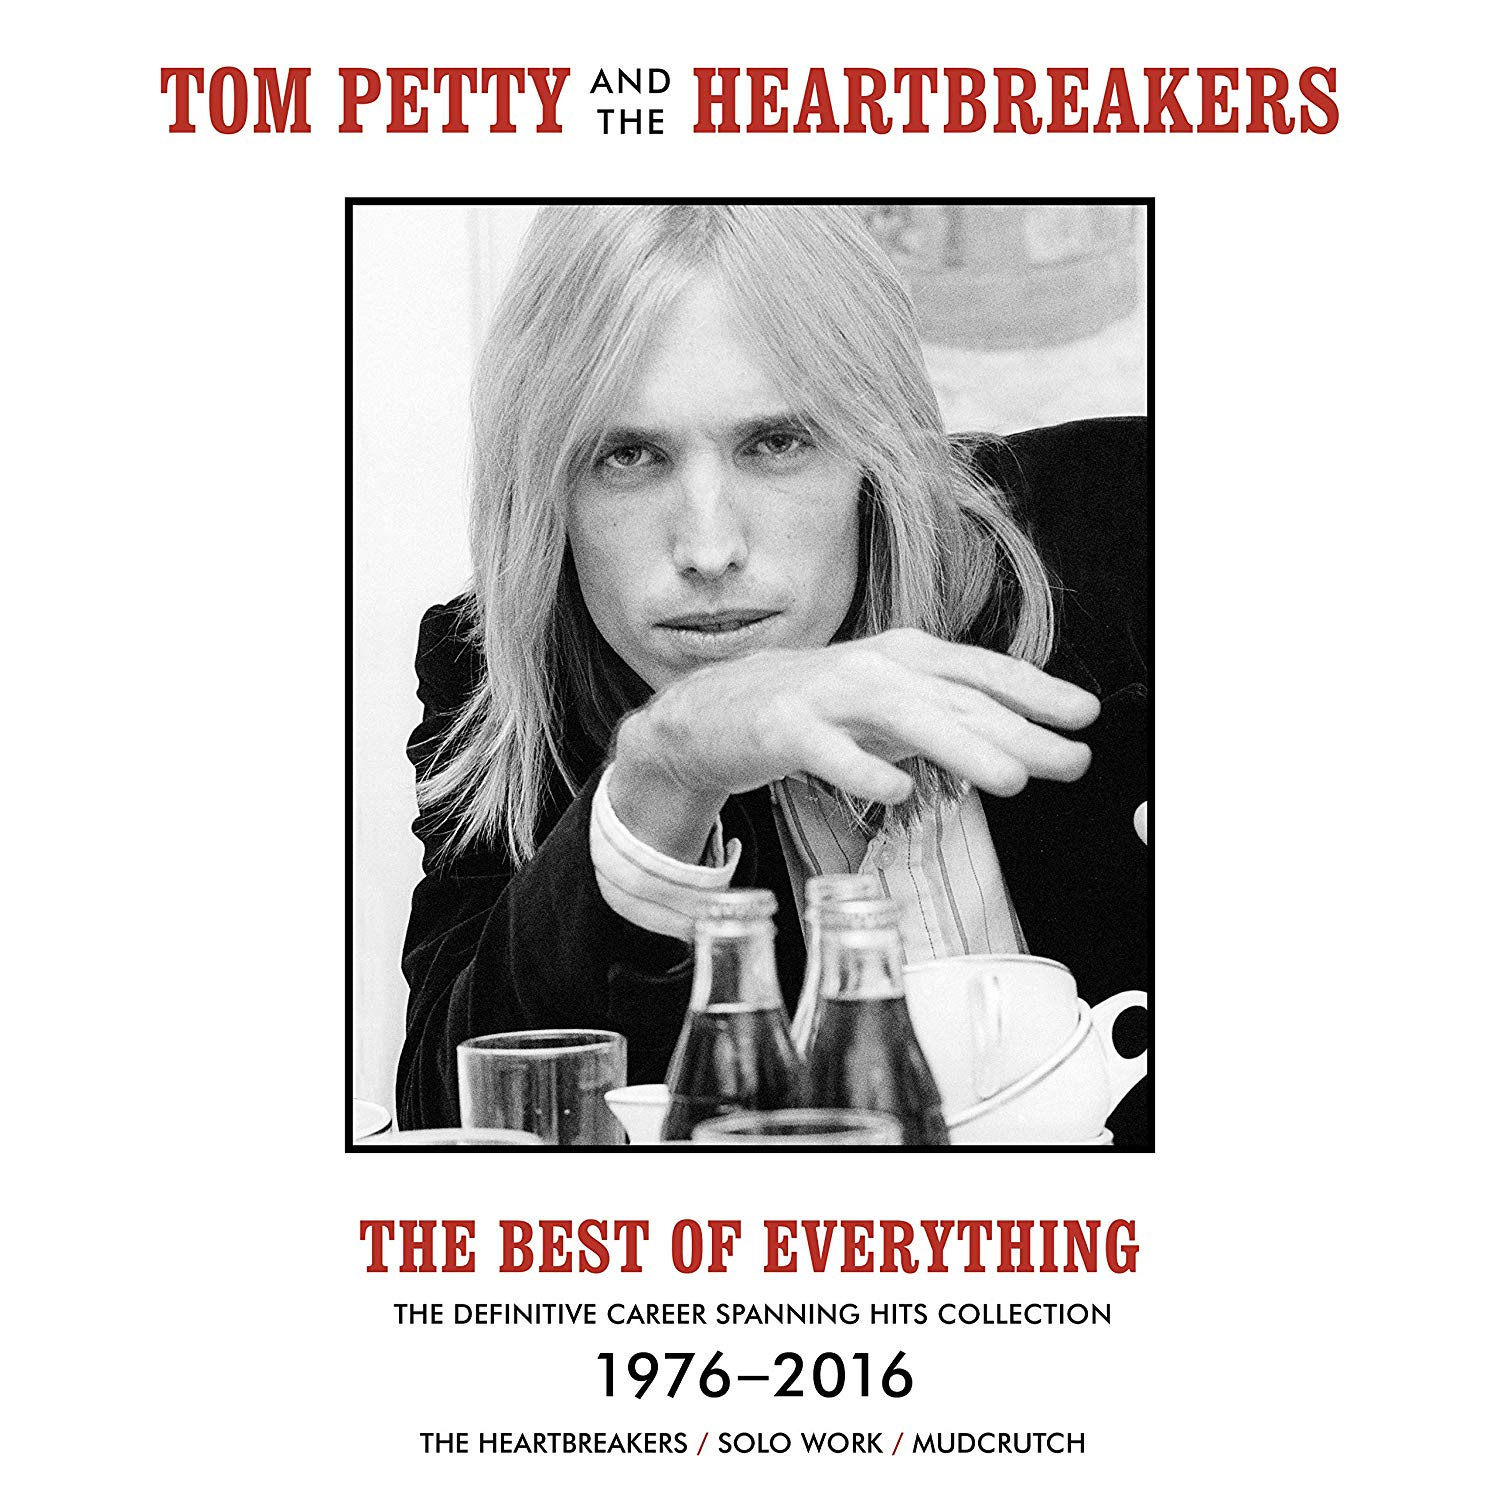 More Tom Petty Greatest Hits Coming